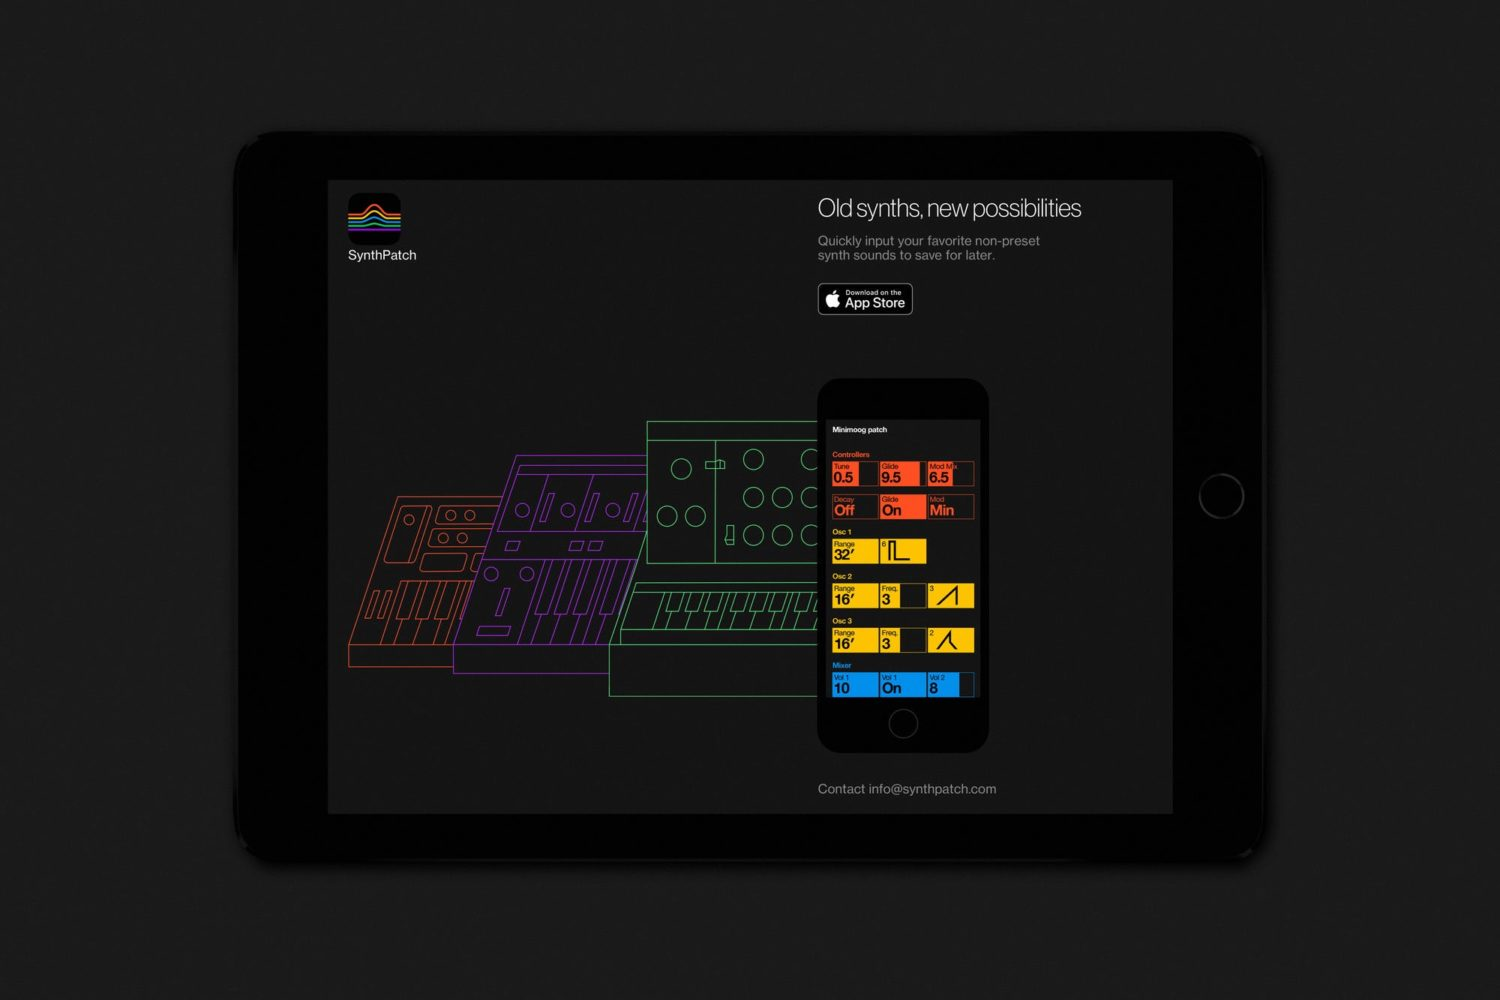 SynthPatch Lets You Organize Patch Sheets For The Minimoog, Pro-One